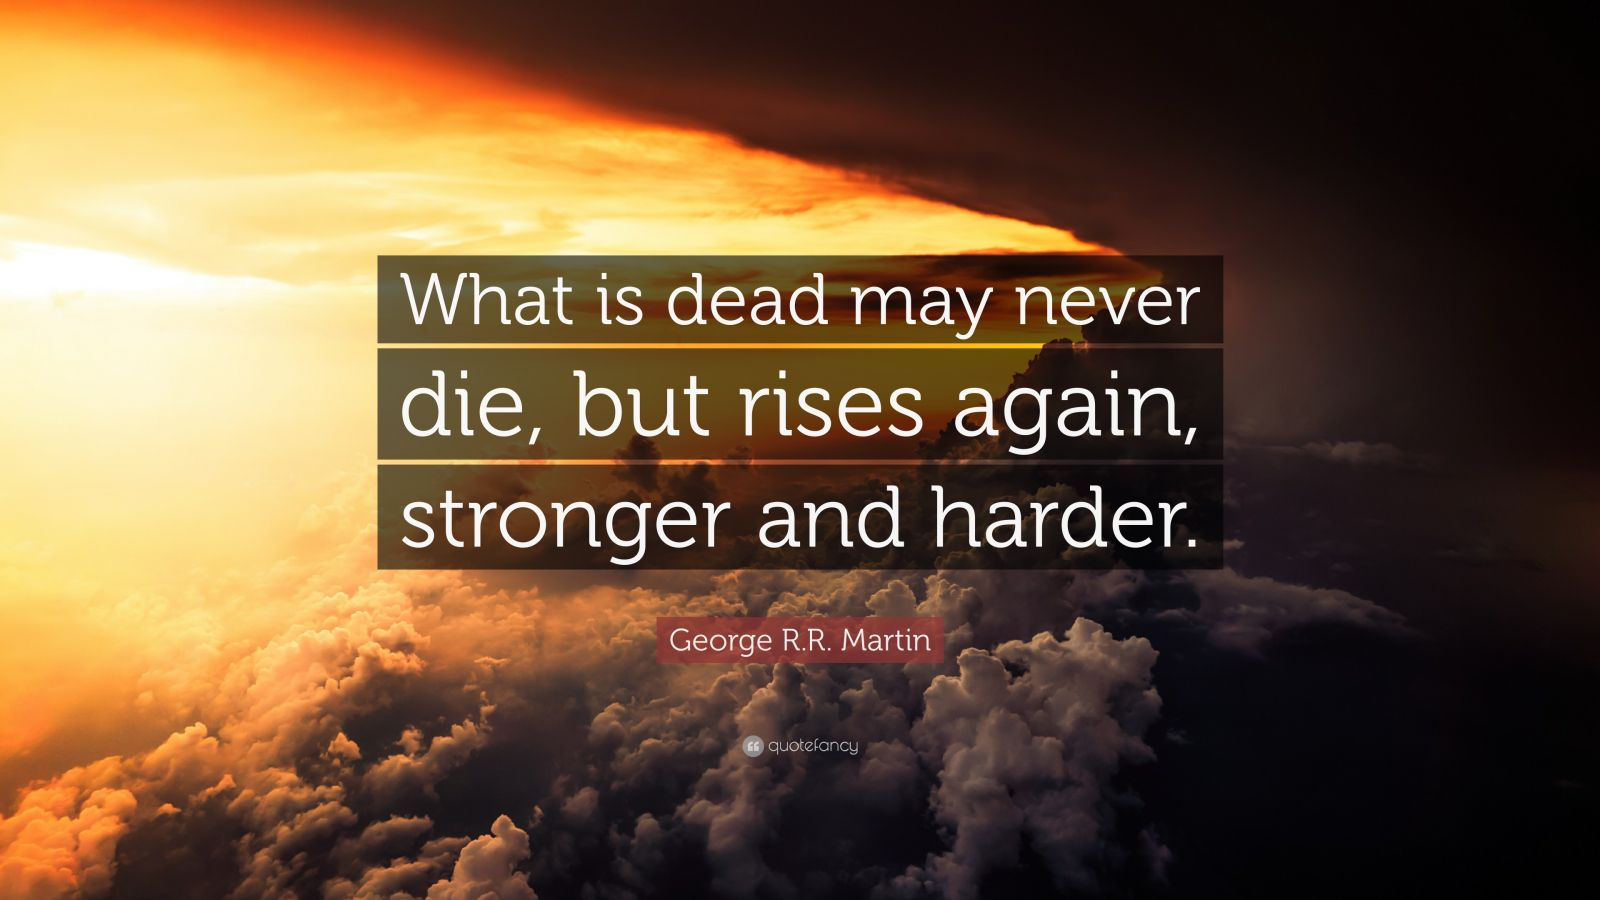 George R R Martin Quote What Is Dead May Never Die But